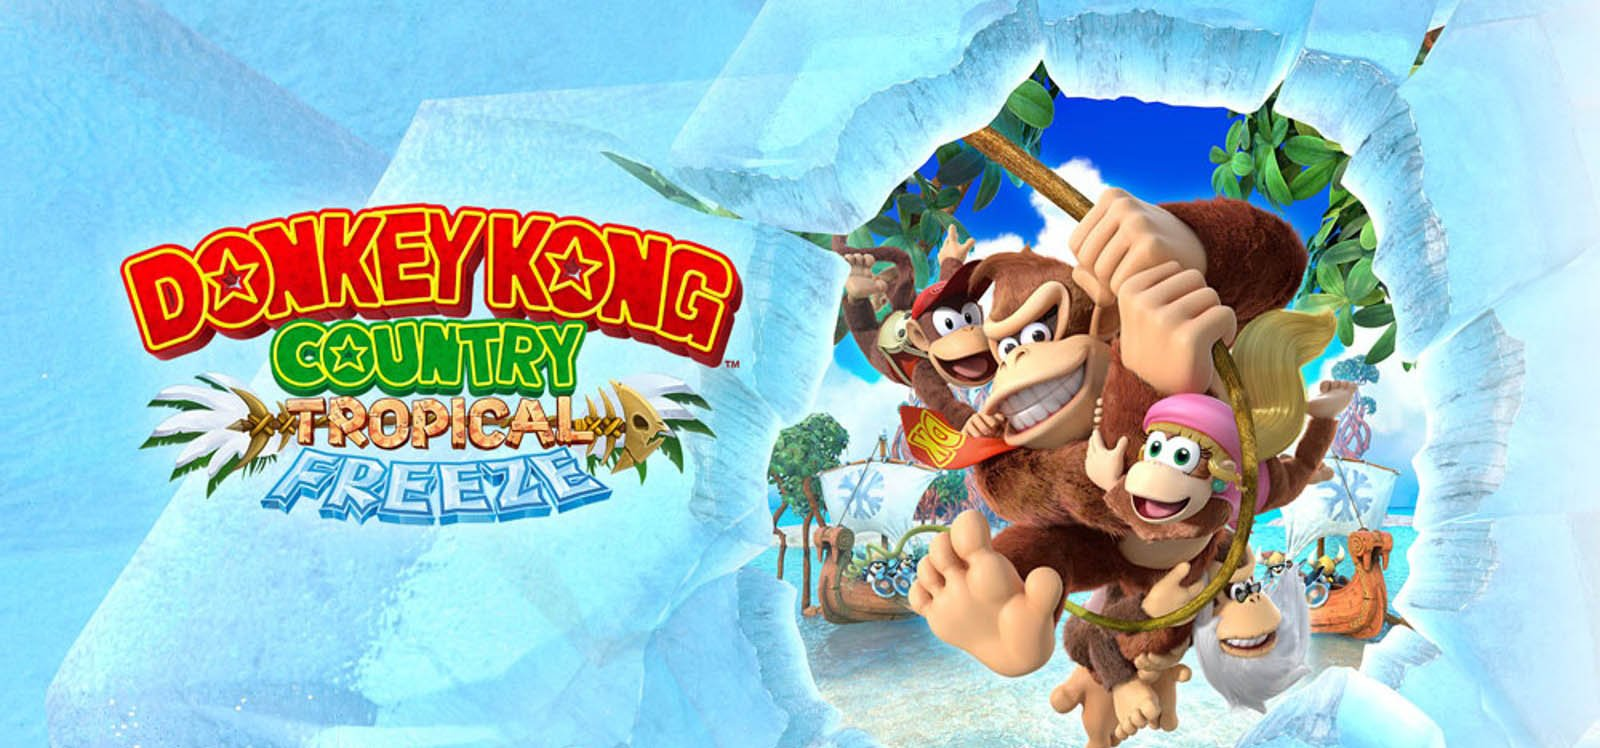 Donkey Kong Country Tropical Nintendo Switch